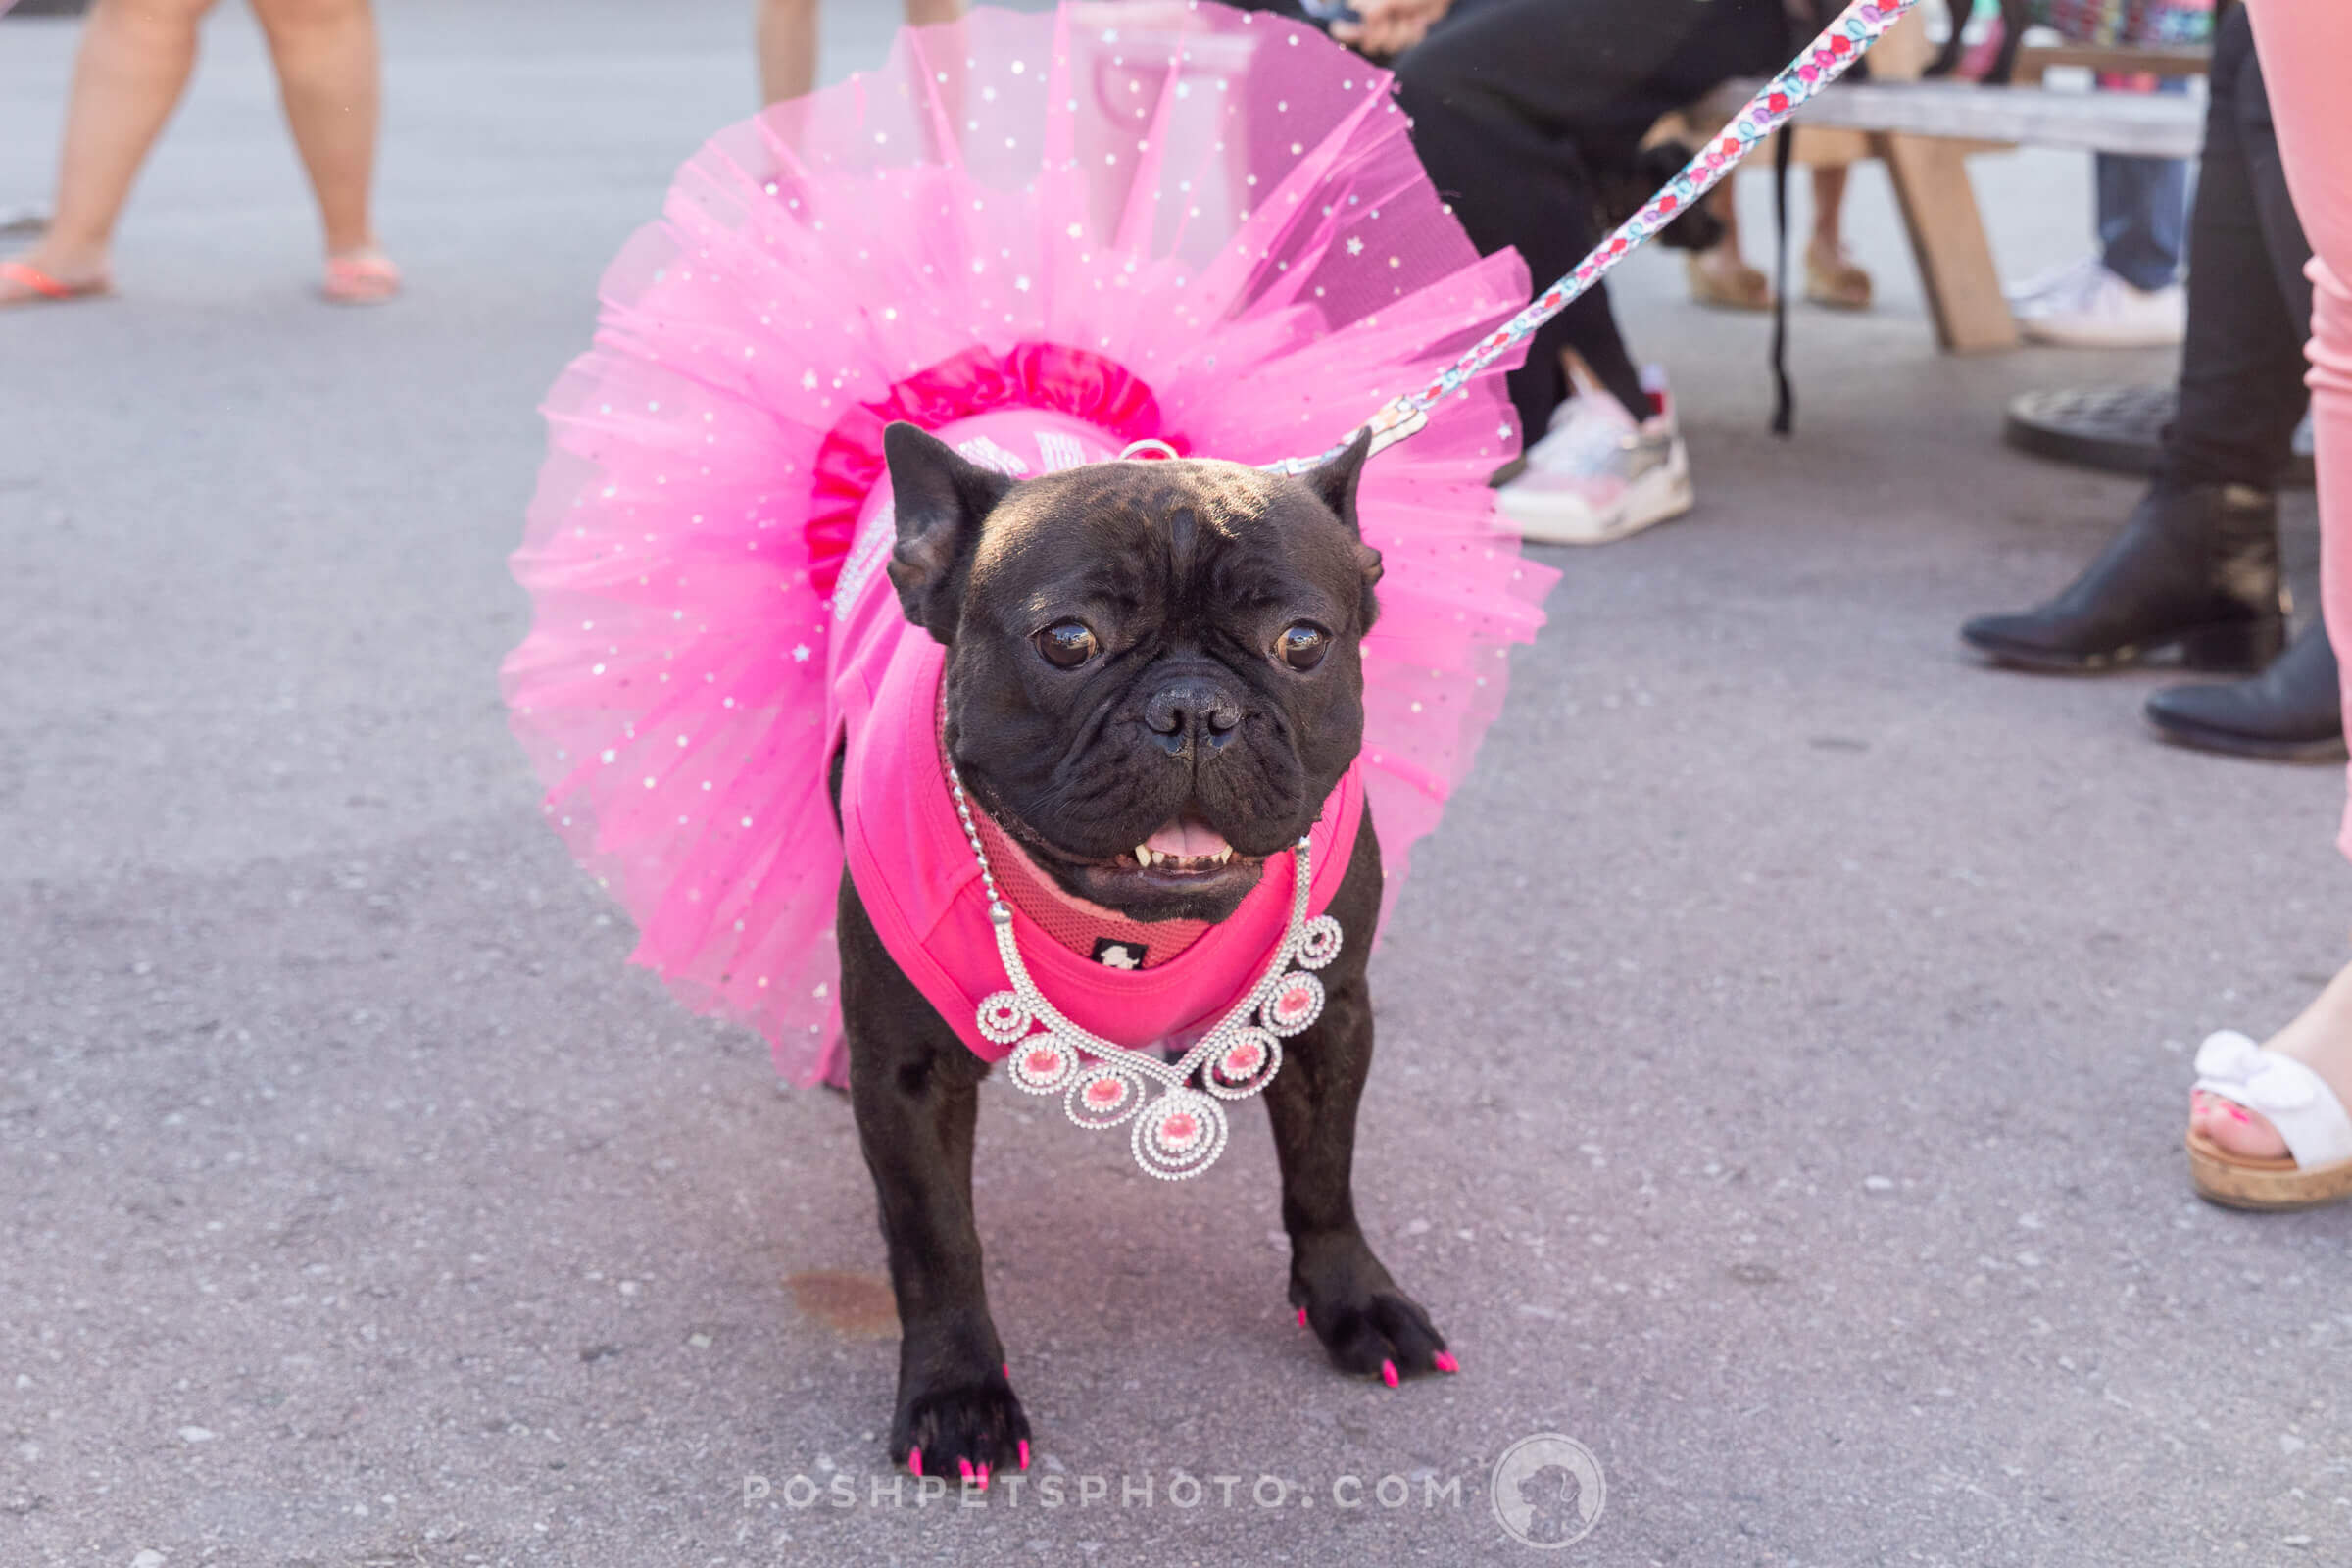 frenchie in pink tutu at wedding